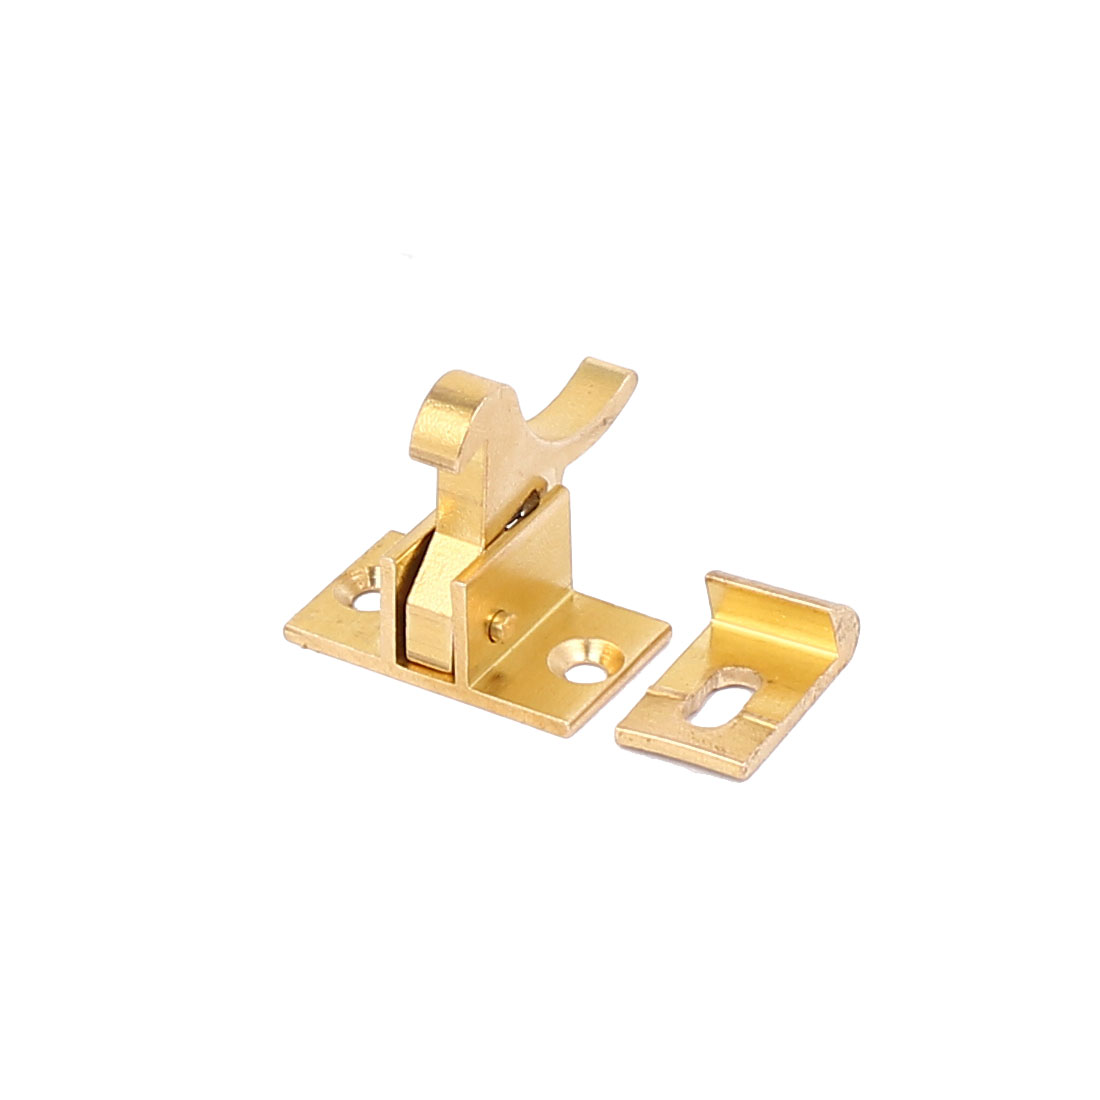 Home Windows Compression Spring Loaded Toggle Latch Catch Brass Tone